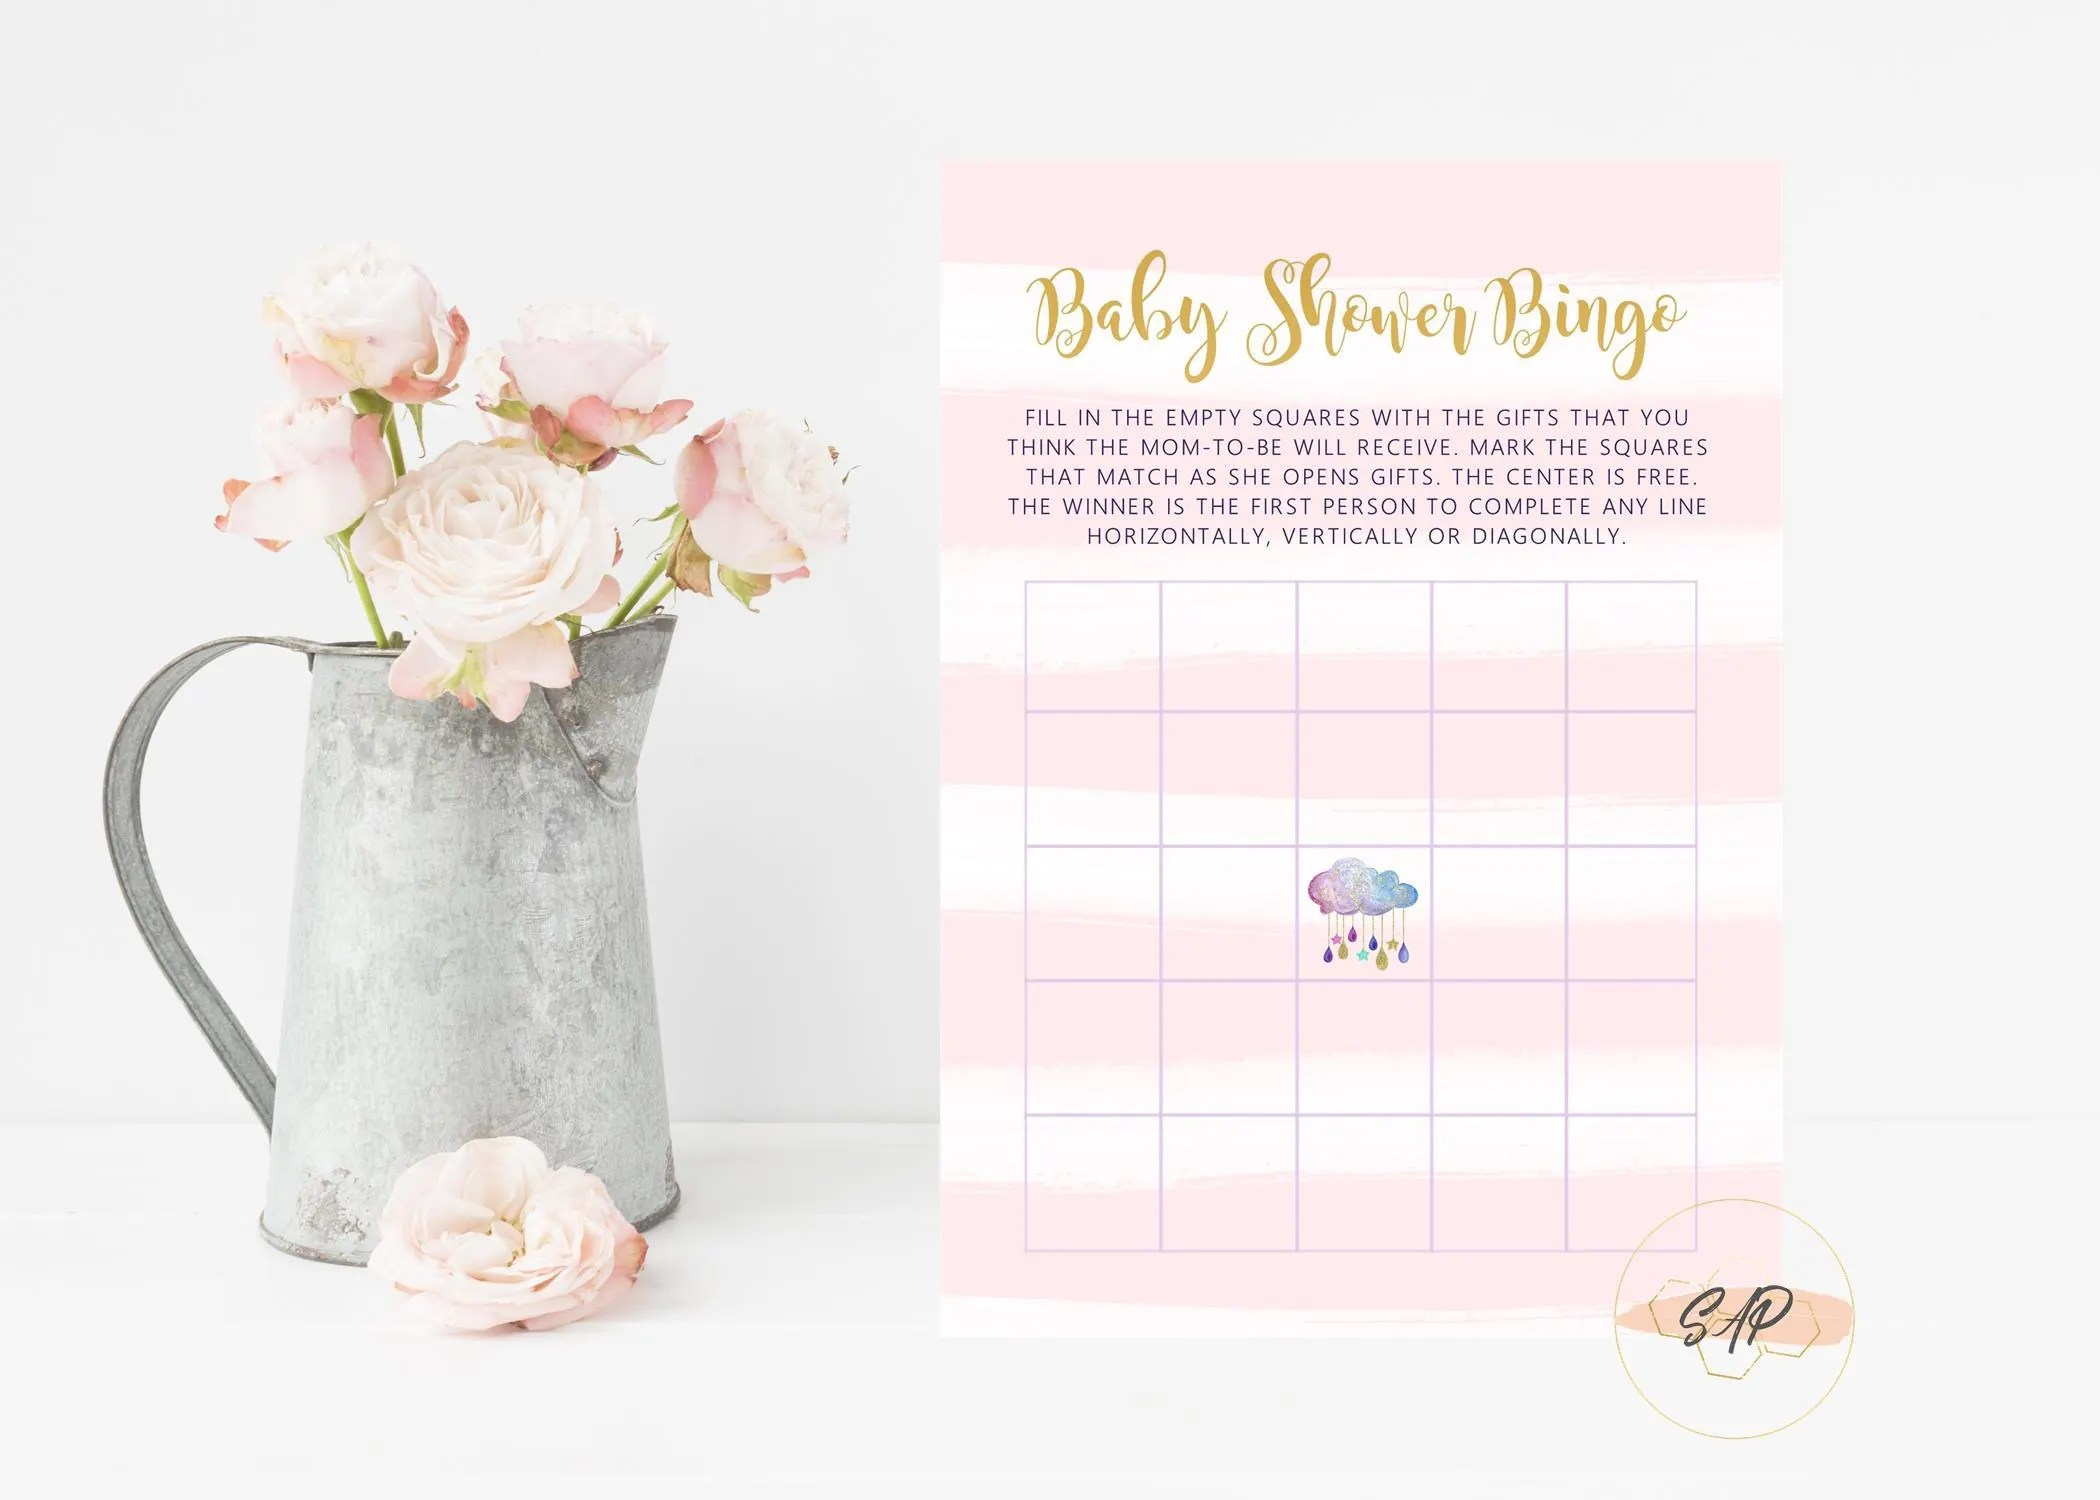 Baby Shower Bingo Cards Baby Shower Bingo Printable Bingo